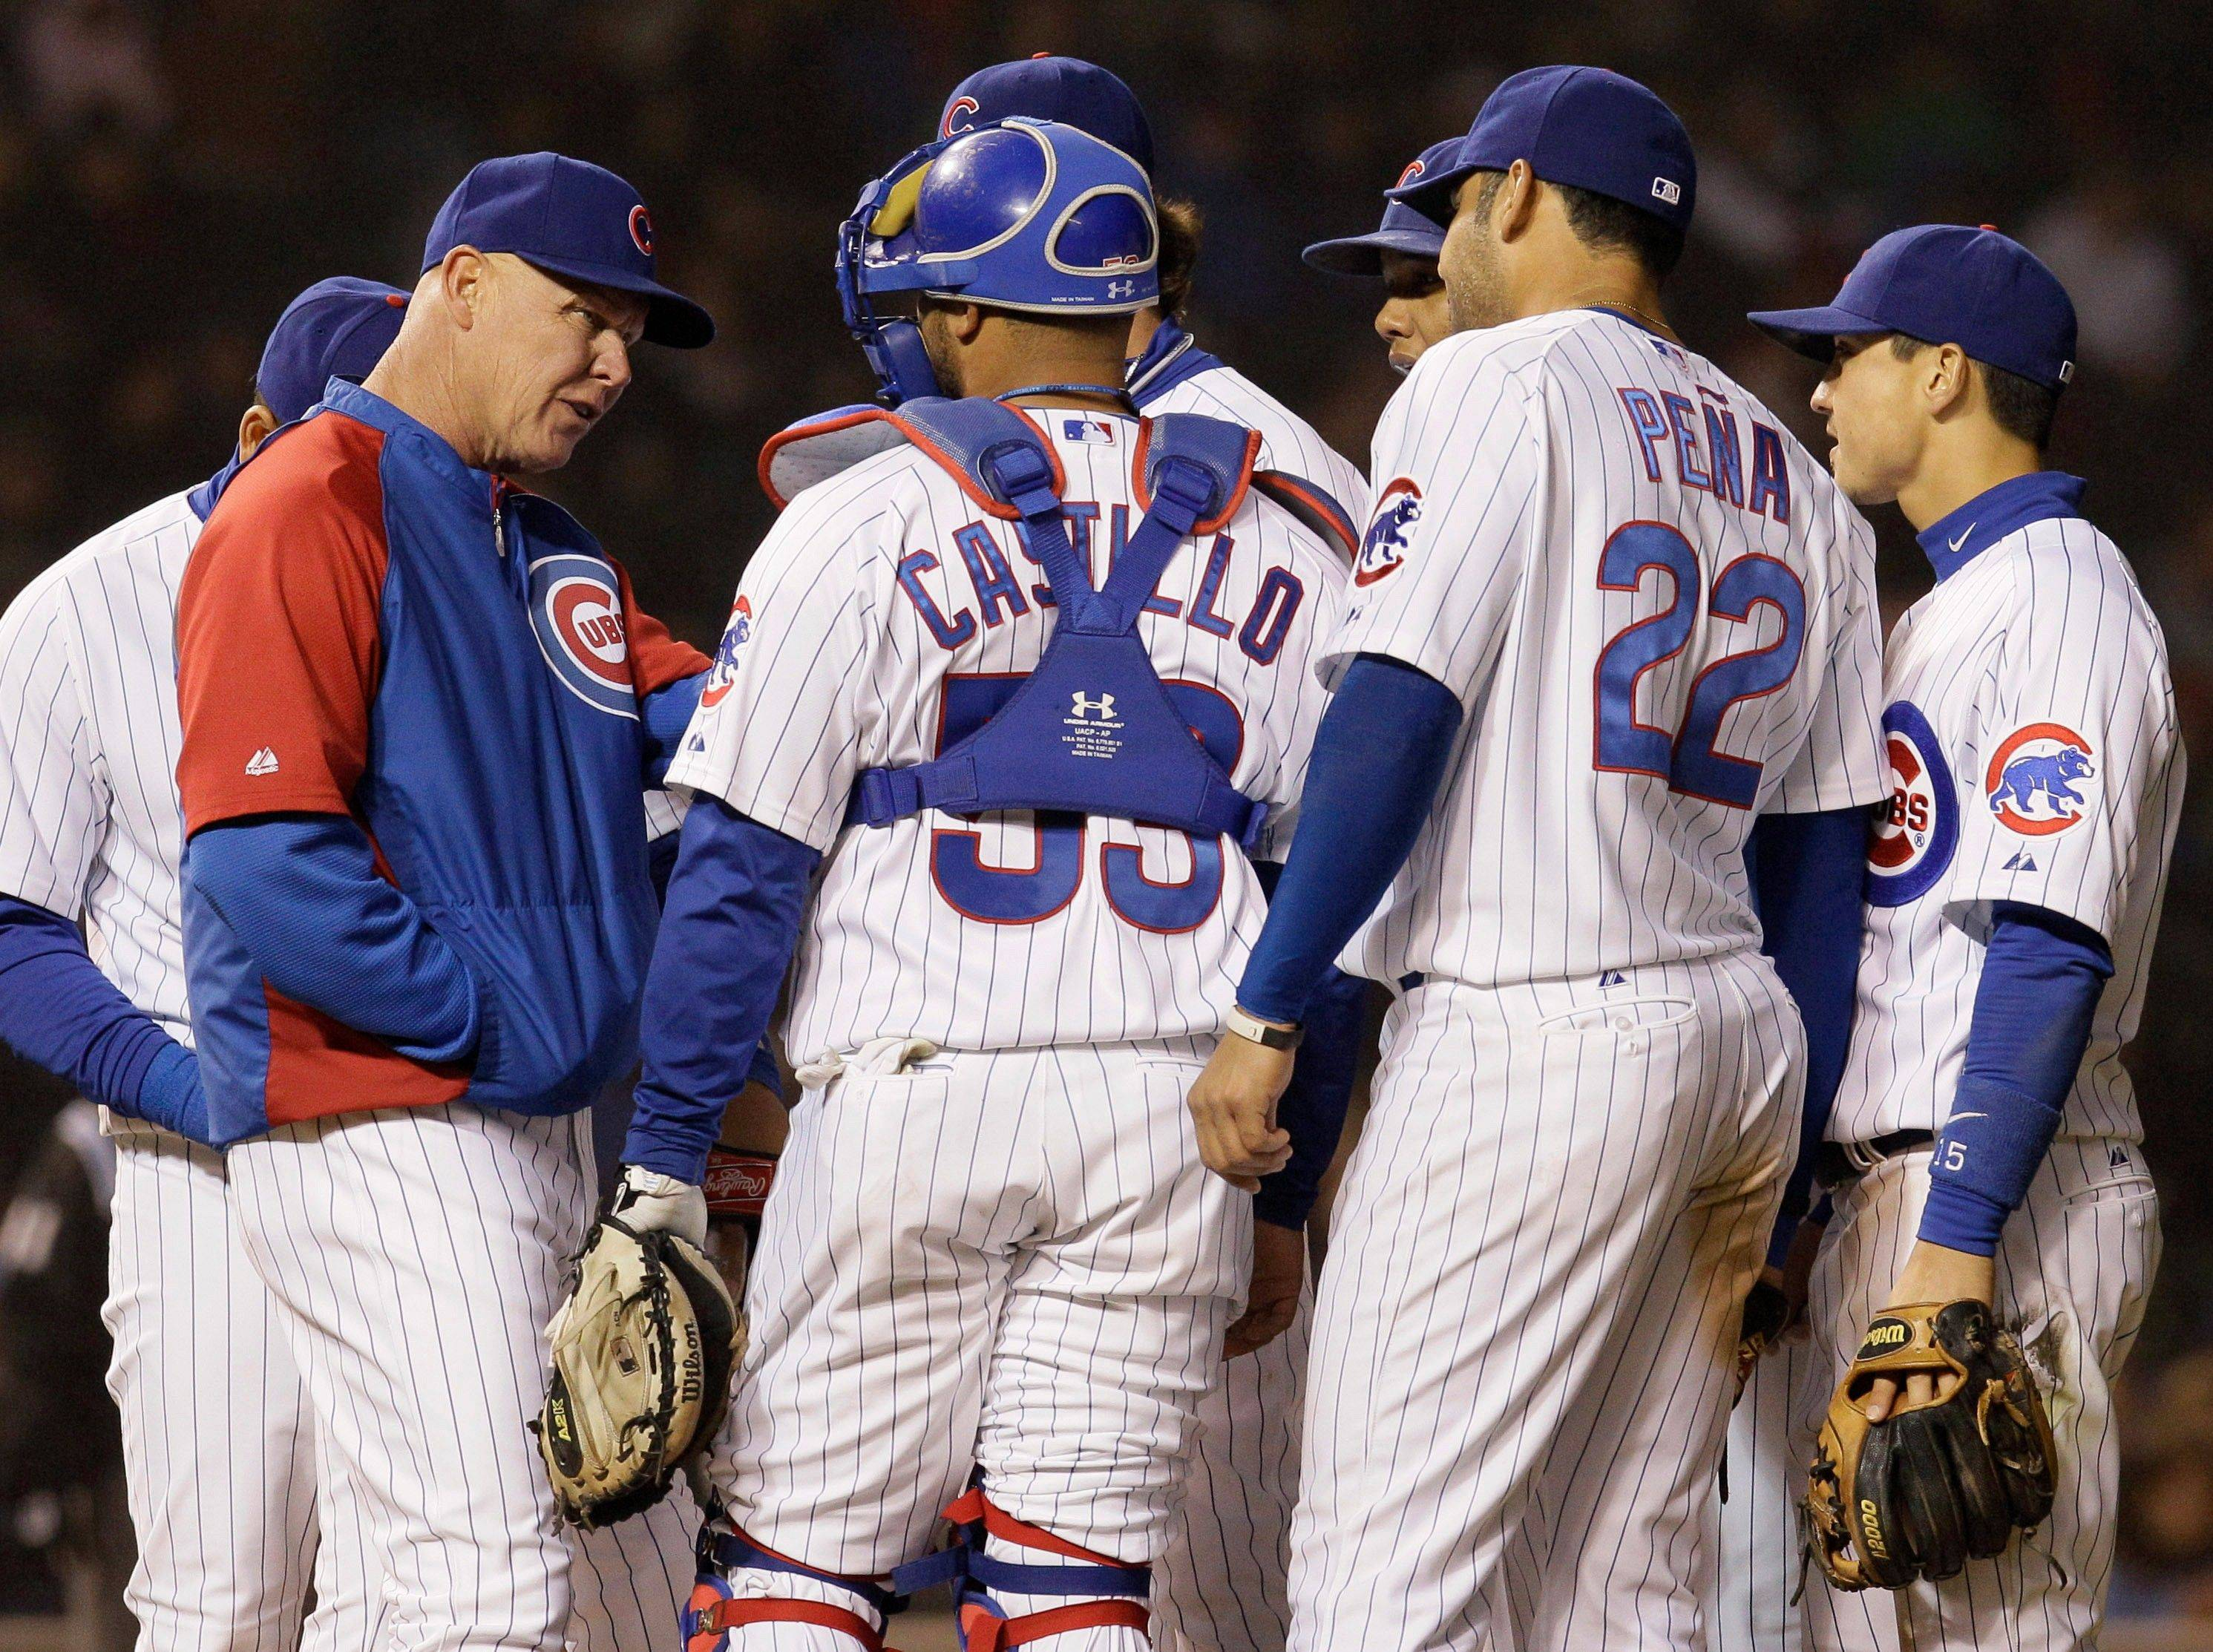 It wouldn't hurt Mike Quade, left, if he started acting more like a major-league manager than a major-league friend to the 25 Cubs on his roster.